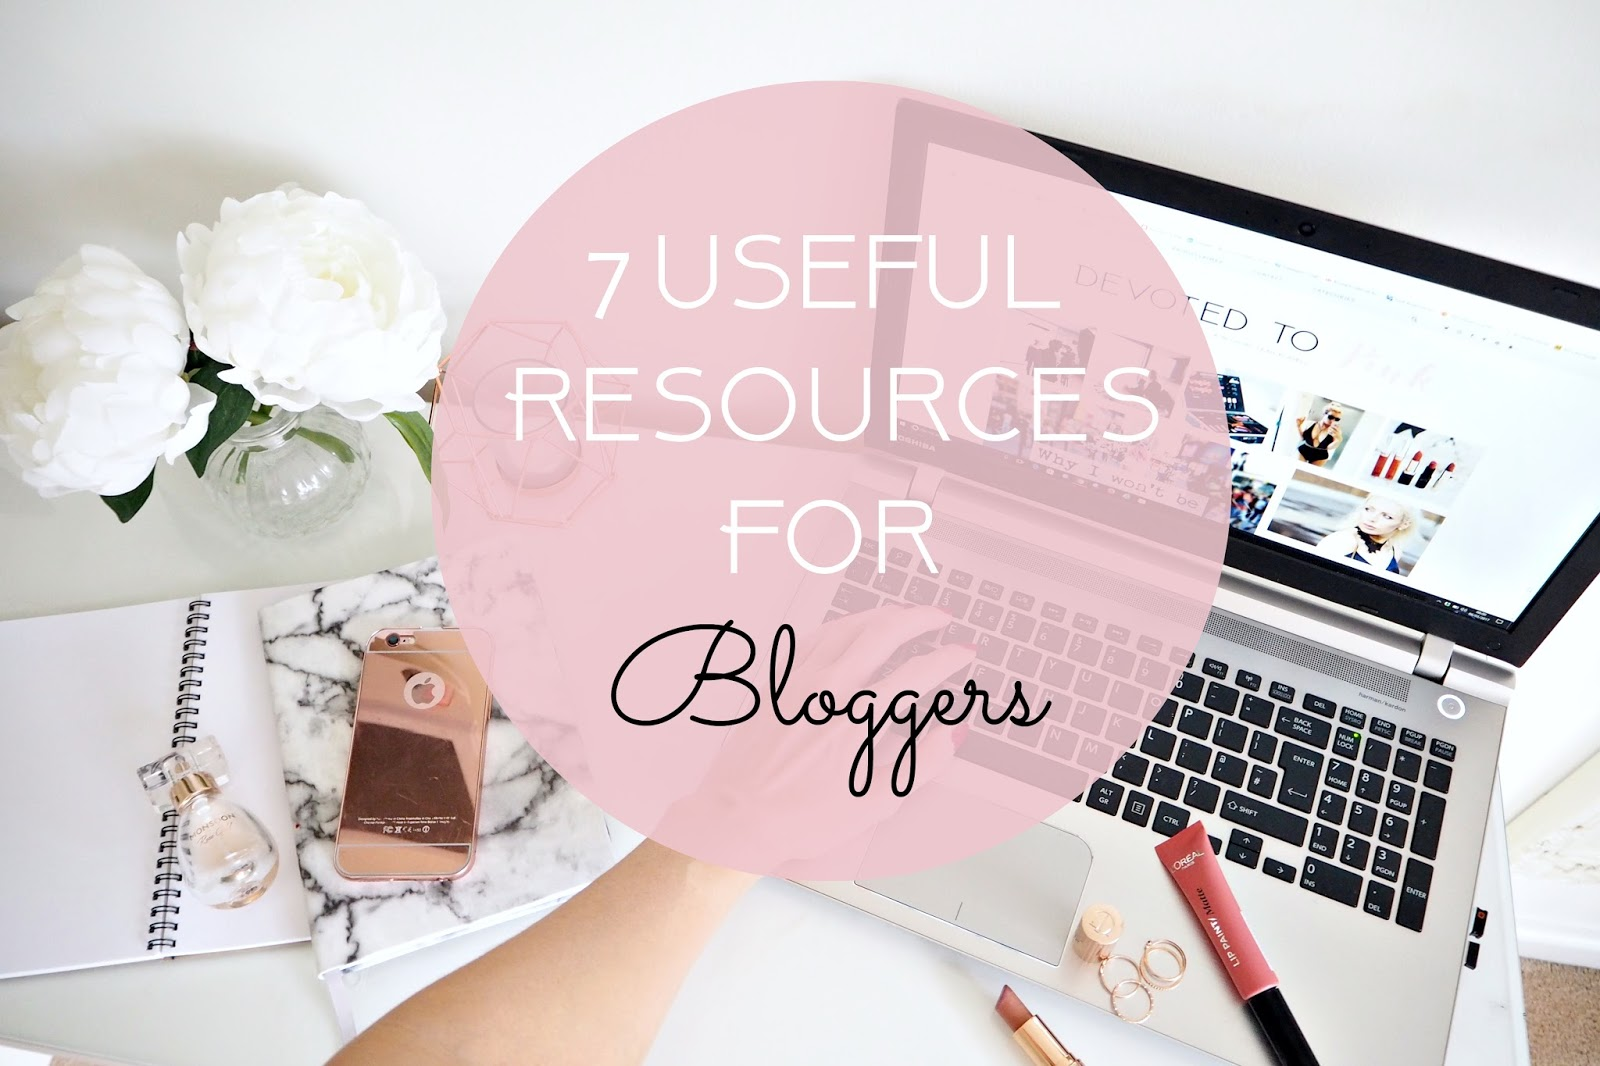 7 Useful resources and tools for bloggers